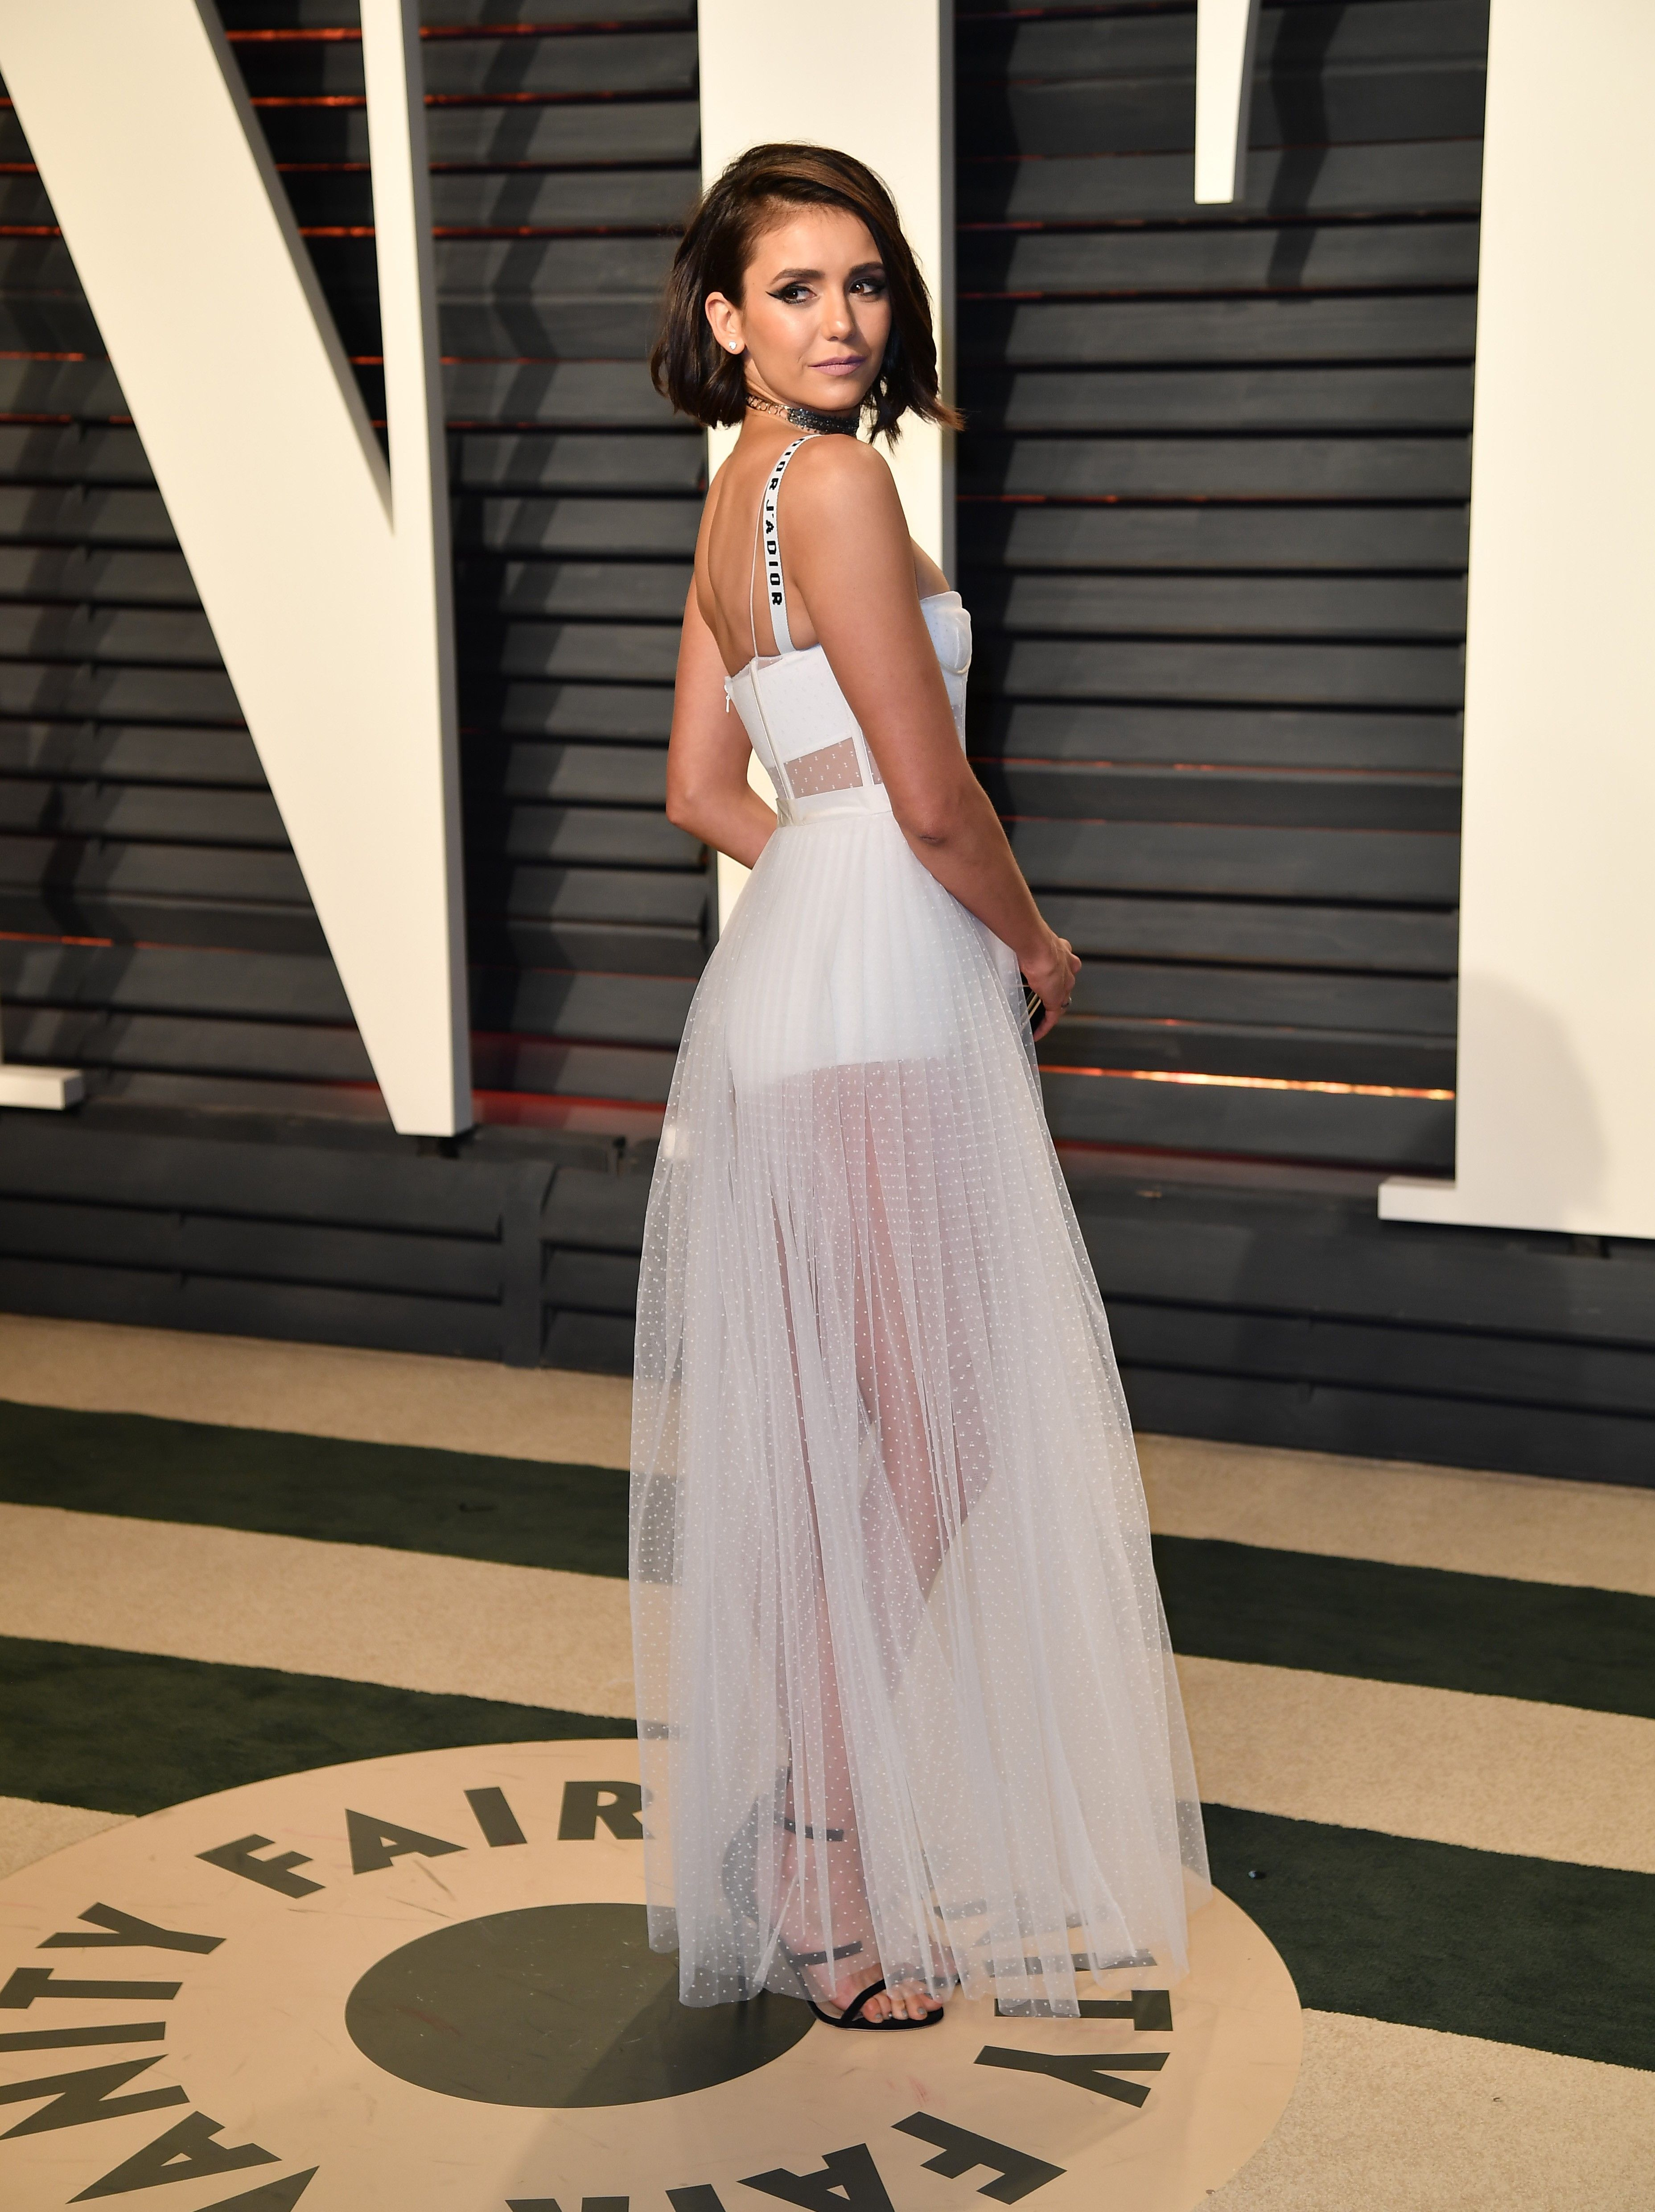 6992fdd594d592 See What All the Celebs Changed Into for the Oscars After-Parties ...